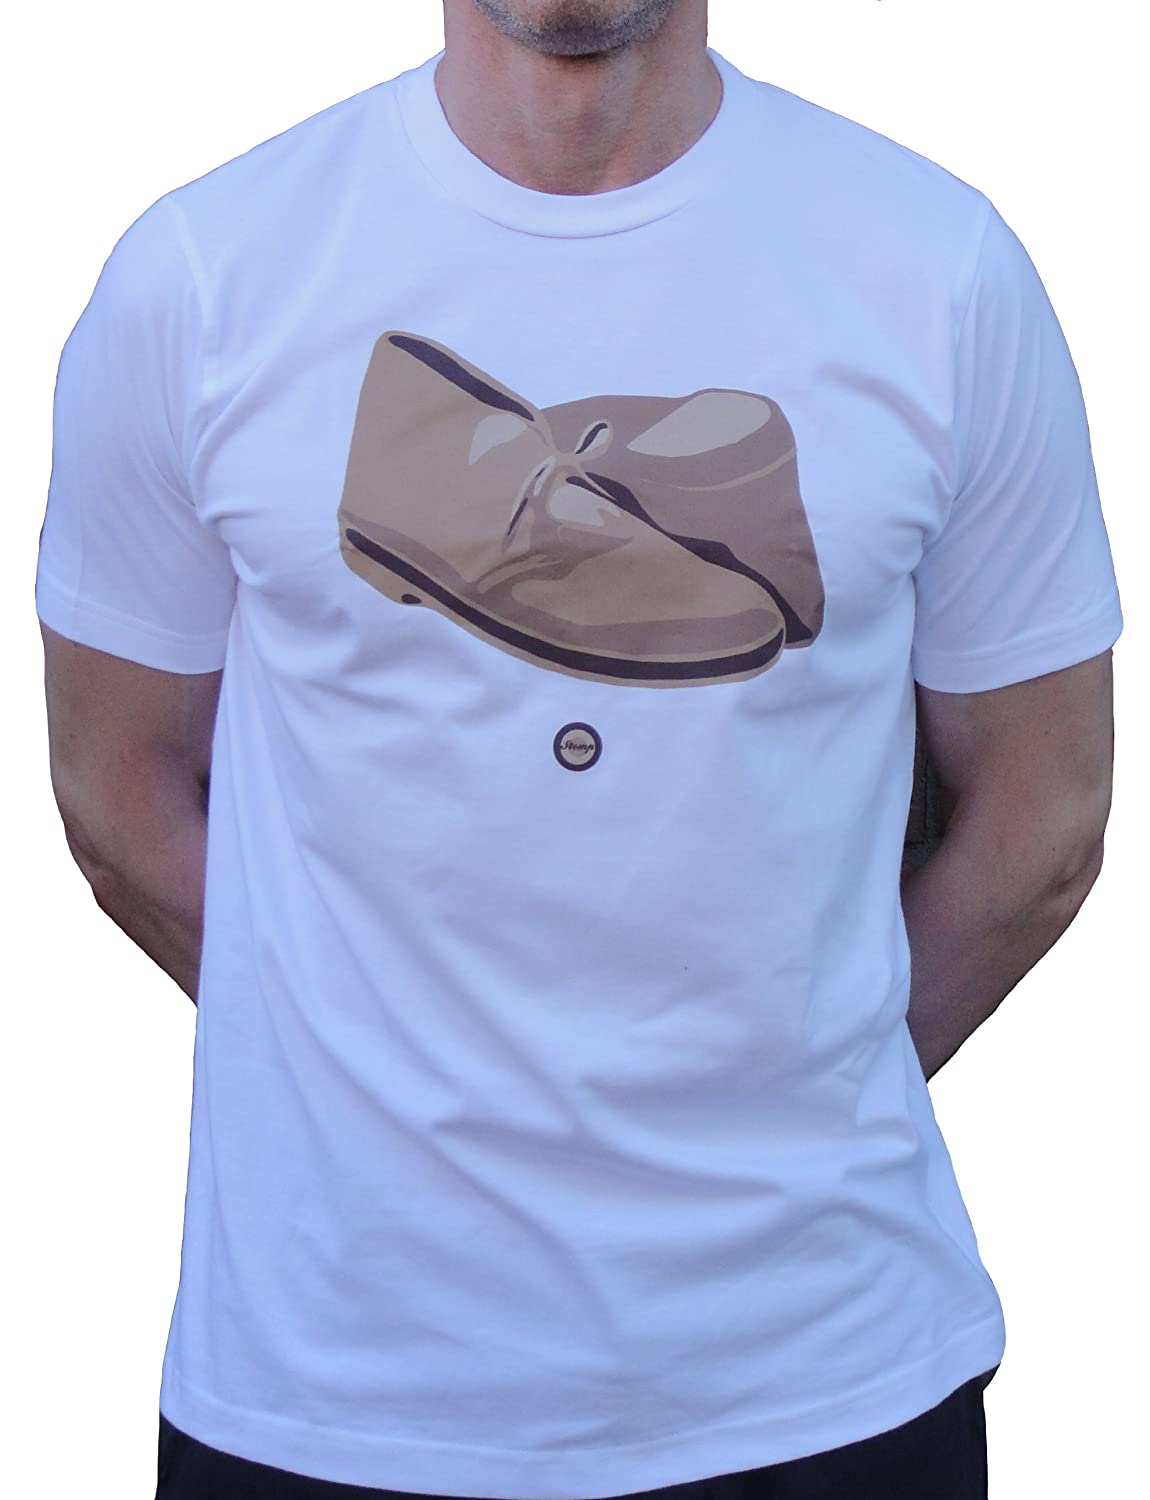 Stomp Desert Boots T Shirt Sizes S-XXL Available